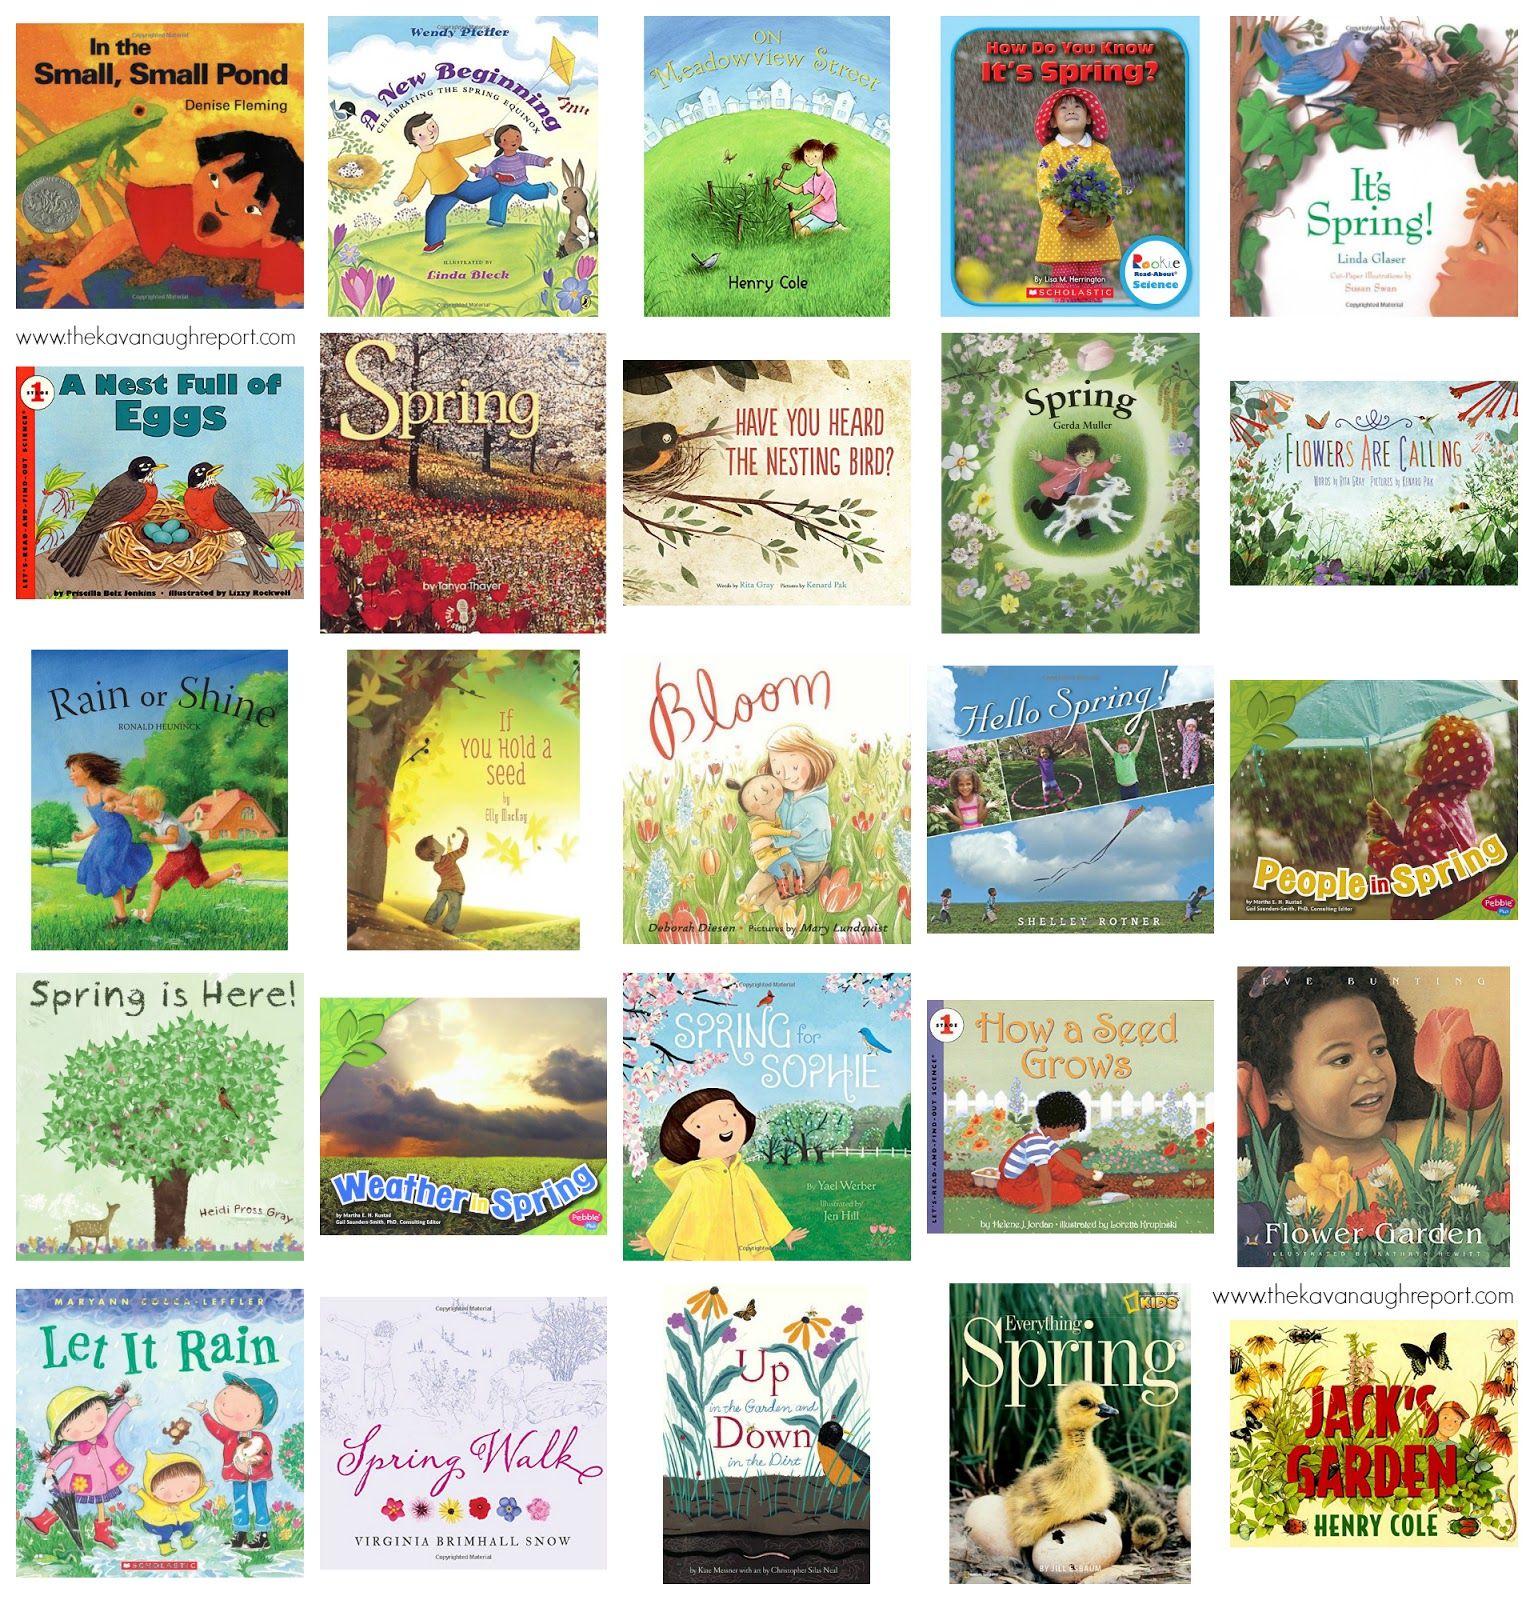 25 Montessori friendly children's books for spring. These books are great introductions to the spring season for young children.